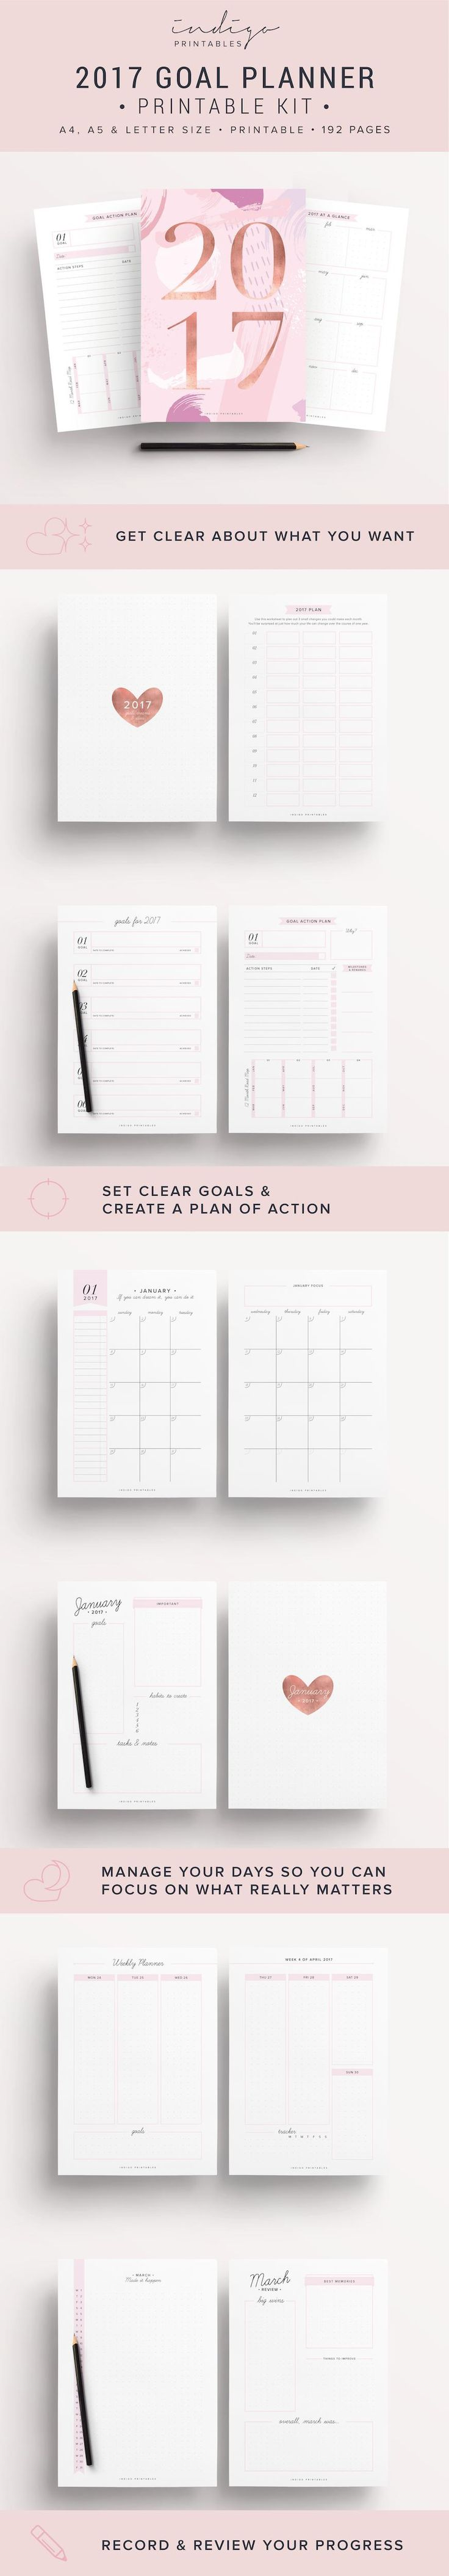 best ideas about professional goals career goals 2017 planner goal planner monthly planner 2017 weekly planner 2017 success planner